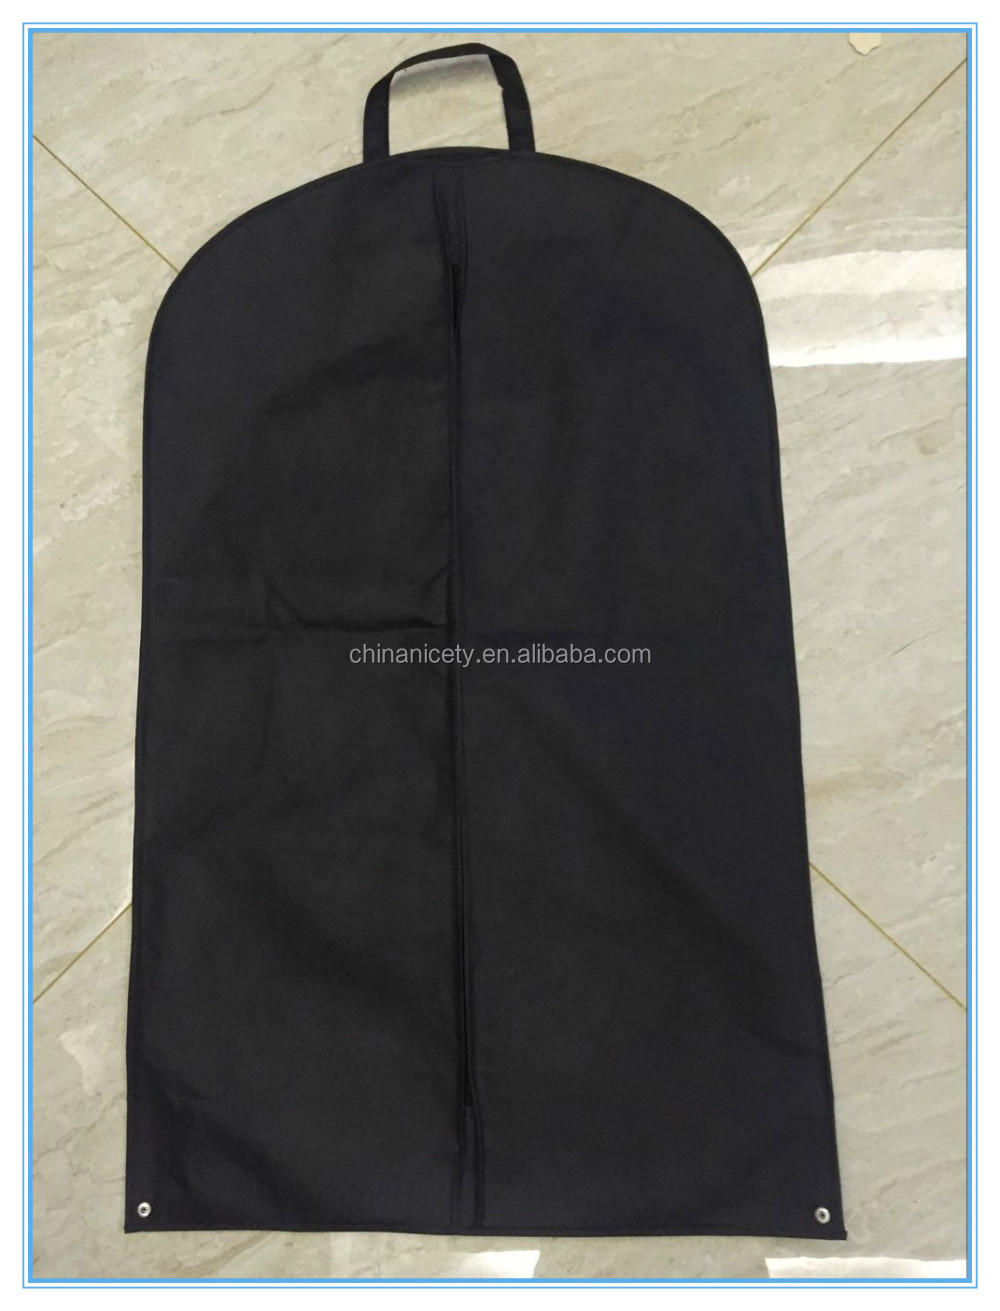 wenzhou cheap fabric suit garment bag buy garment bag